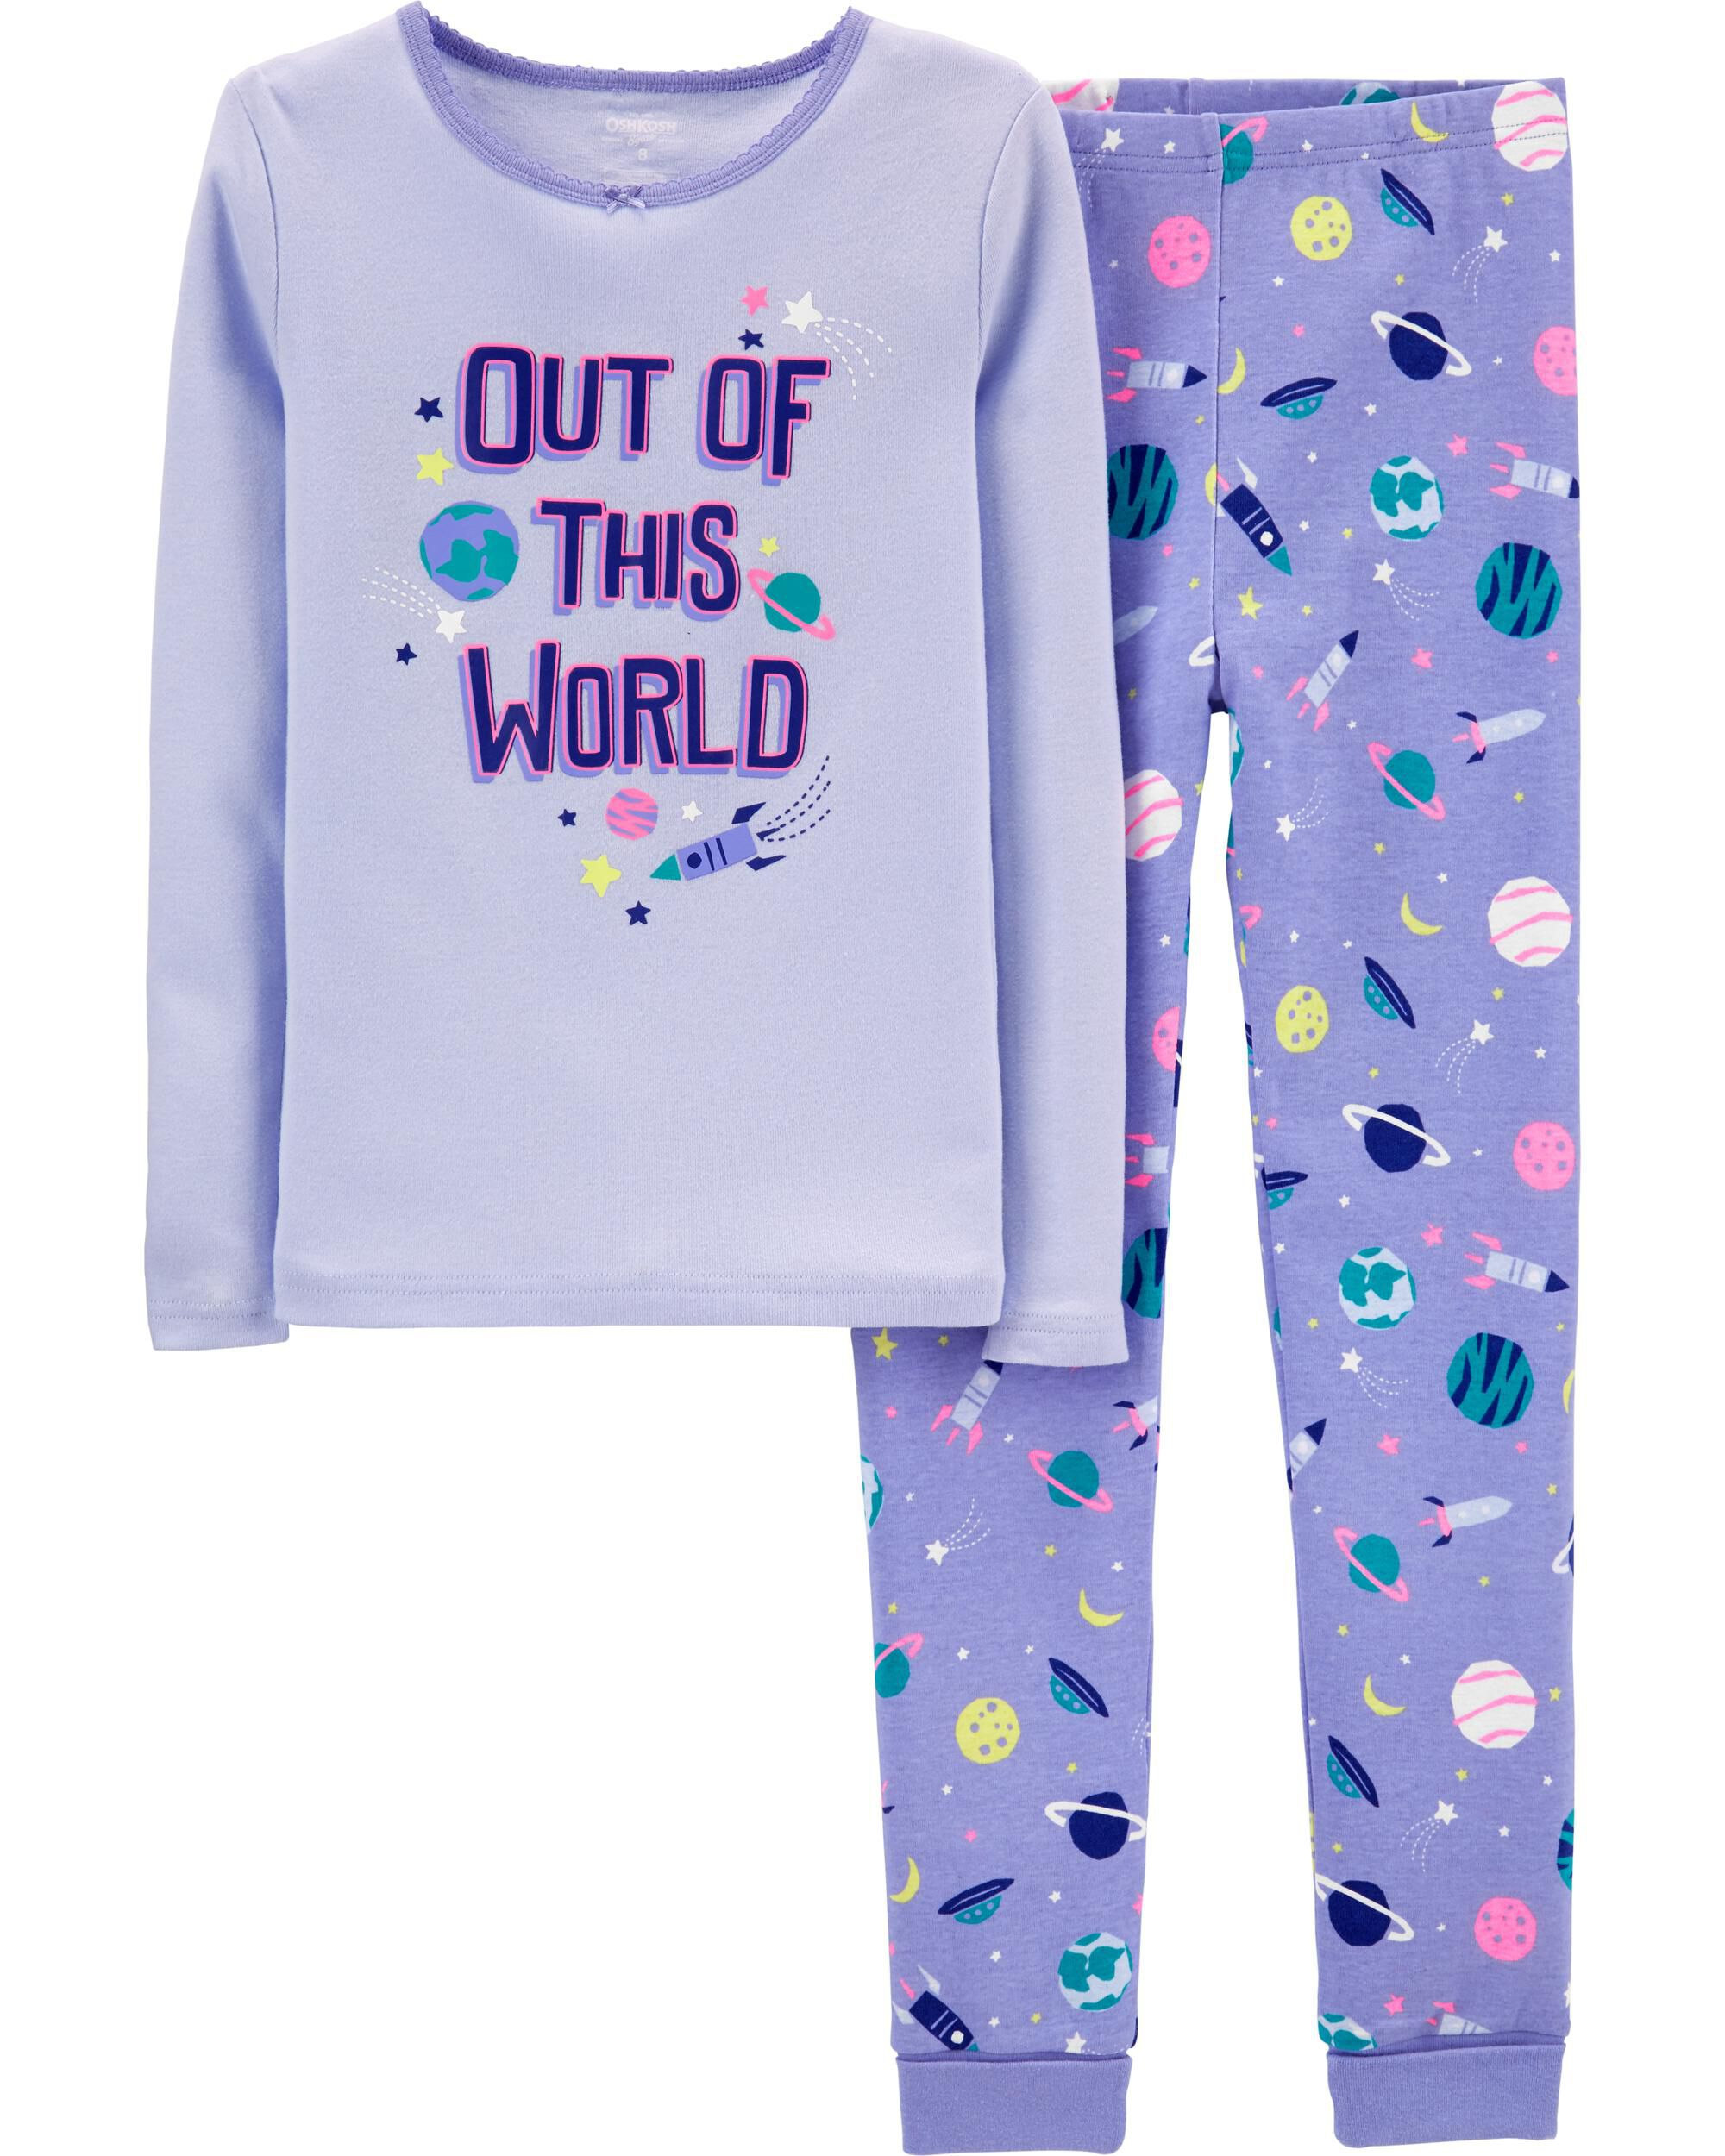 Snug Fit Out of This World Cotton PJs